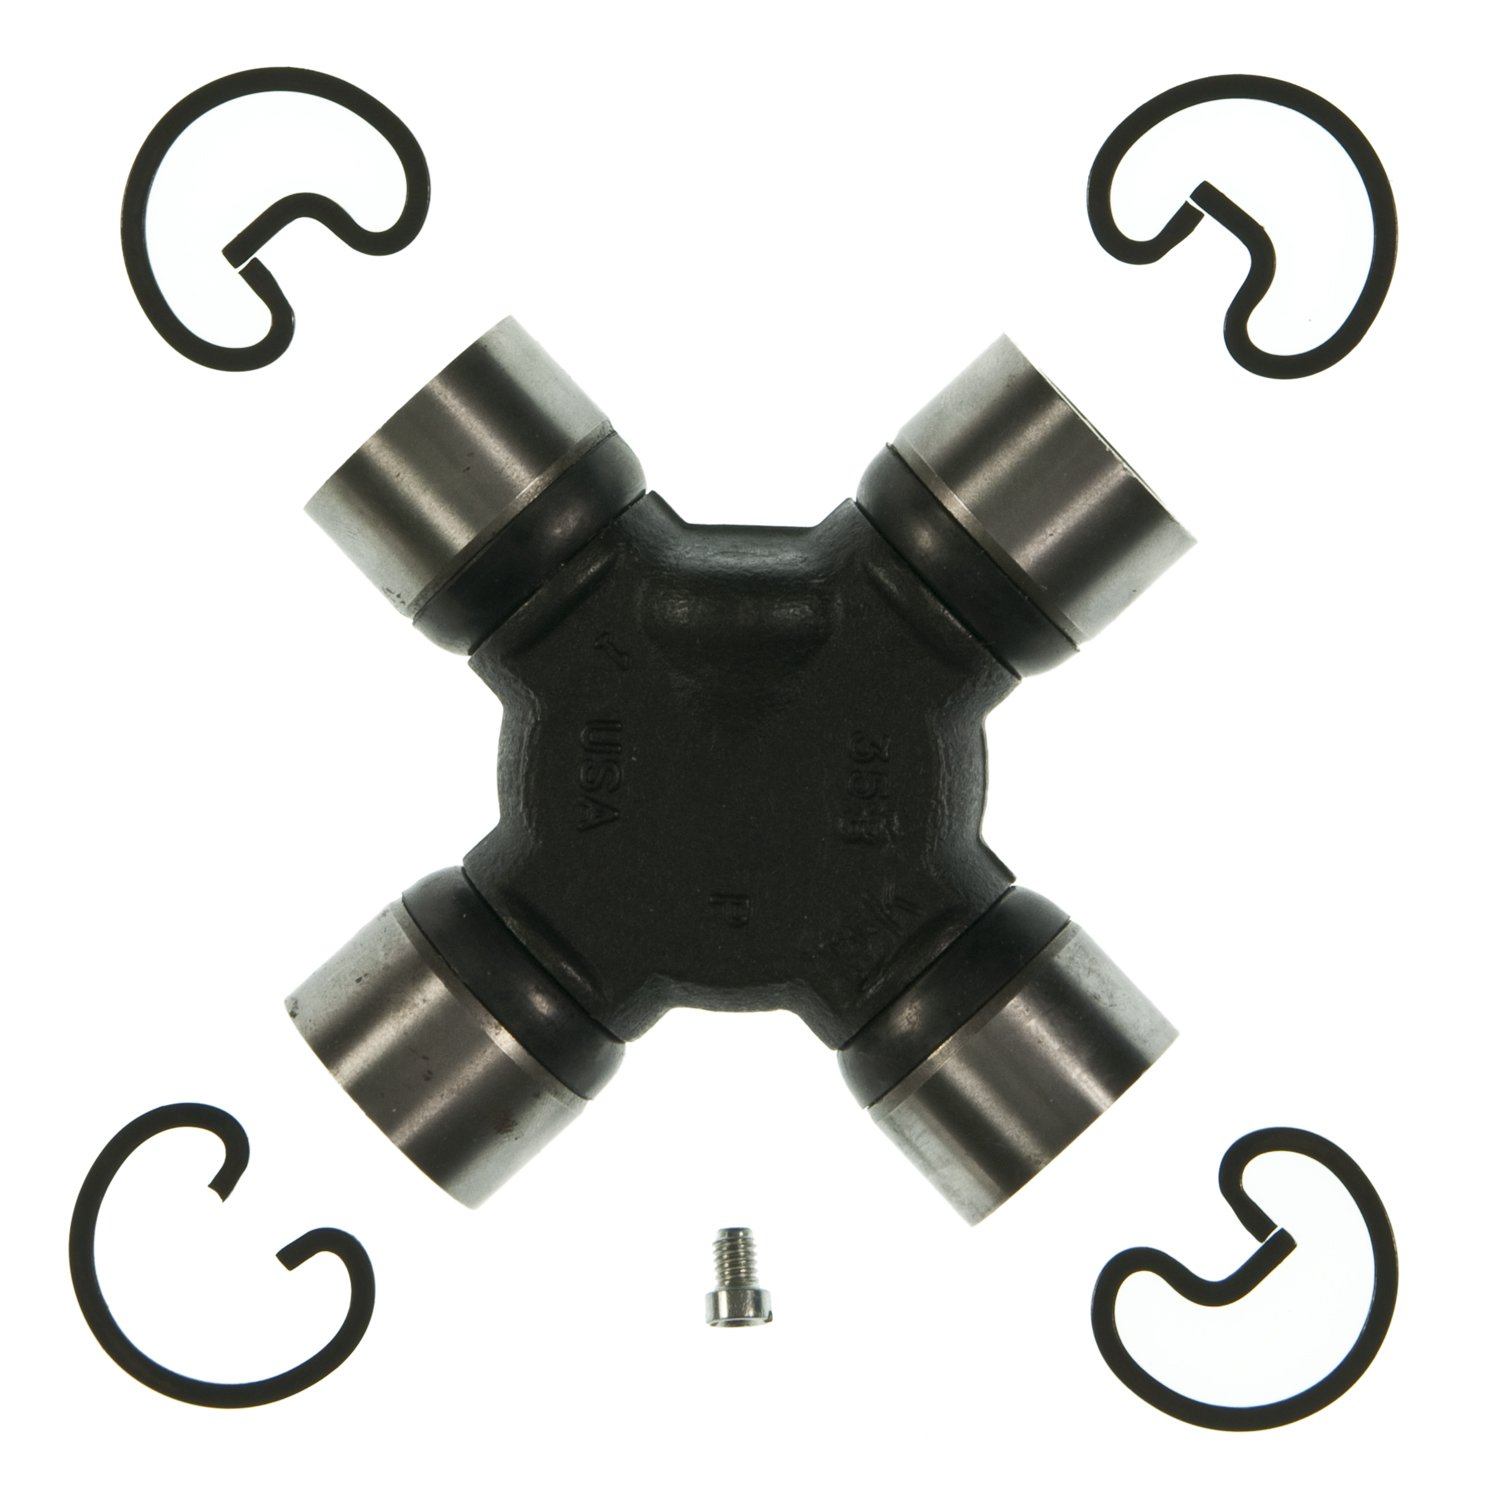 MOOG 270 Super Strength Universal Joint